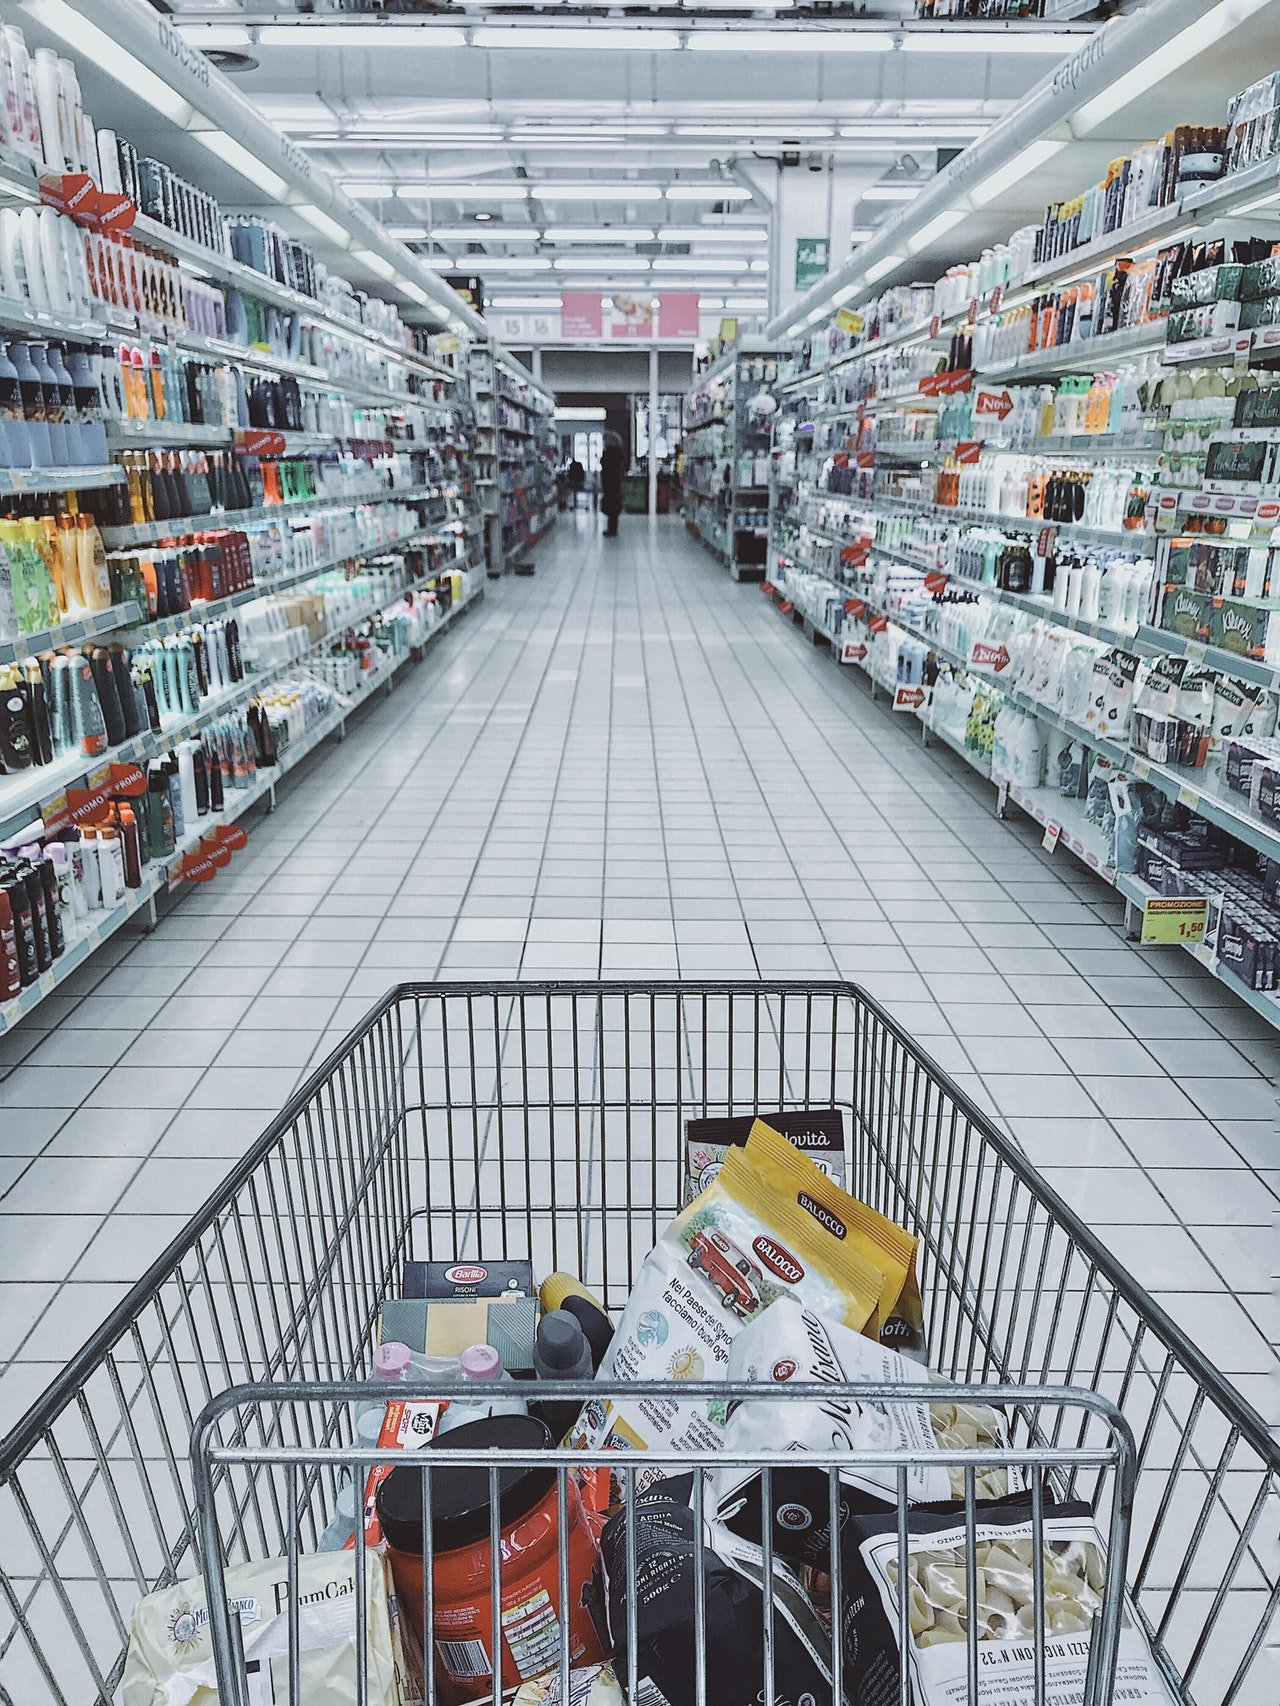 Shopping cart with grocery items in a supermarket | Source: Pexels